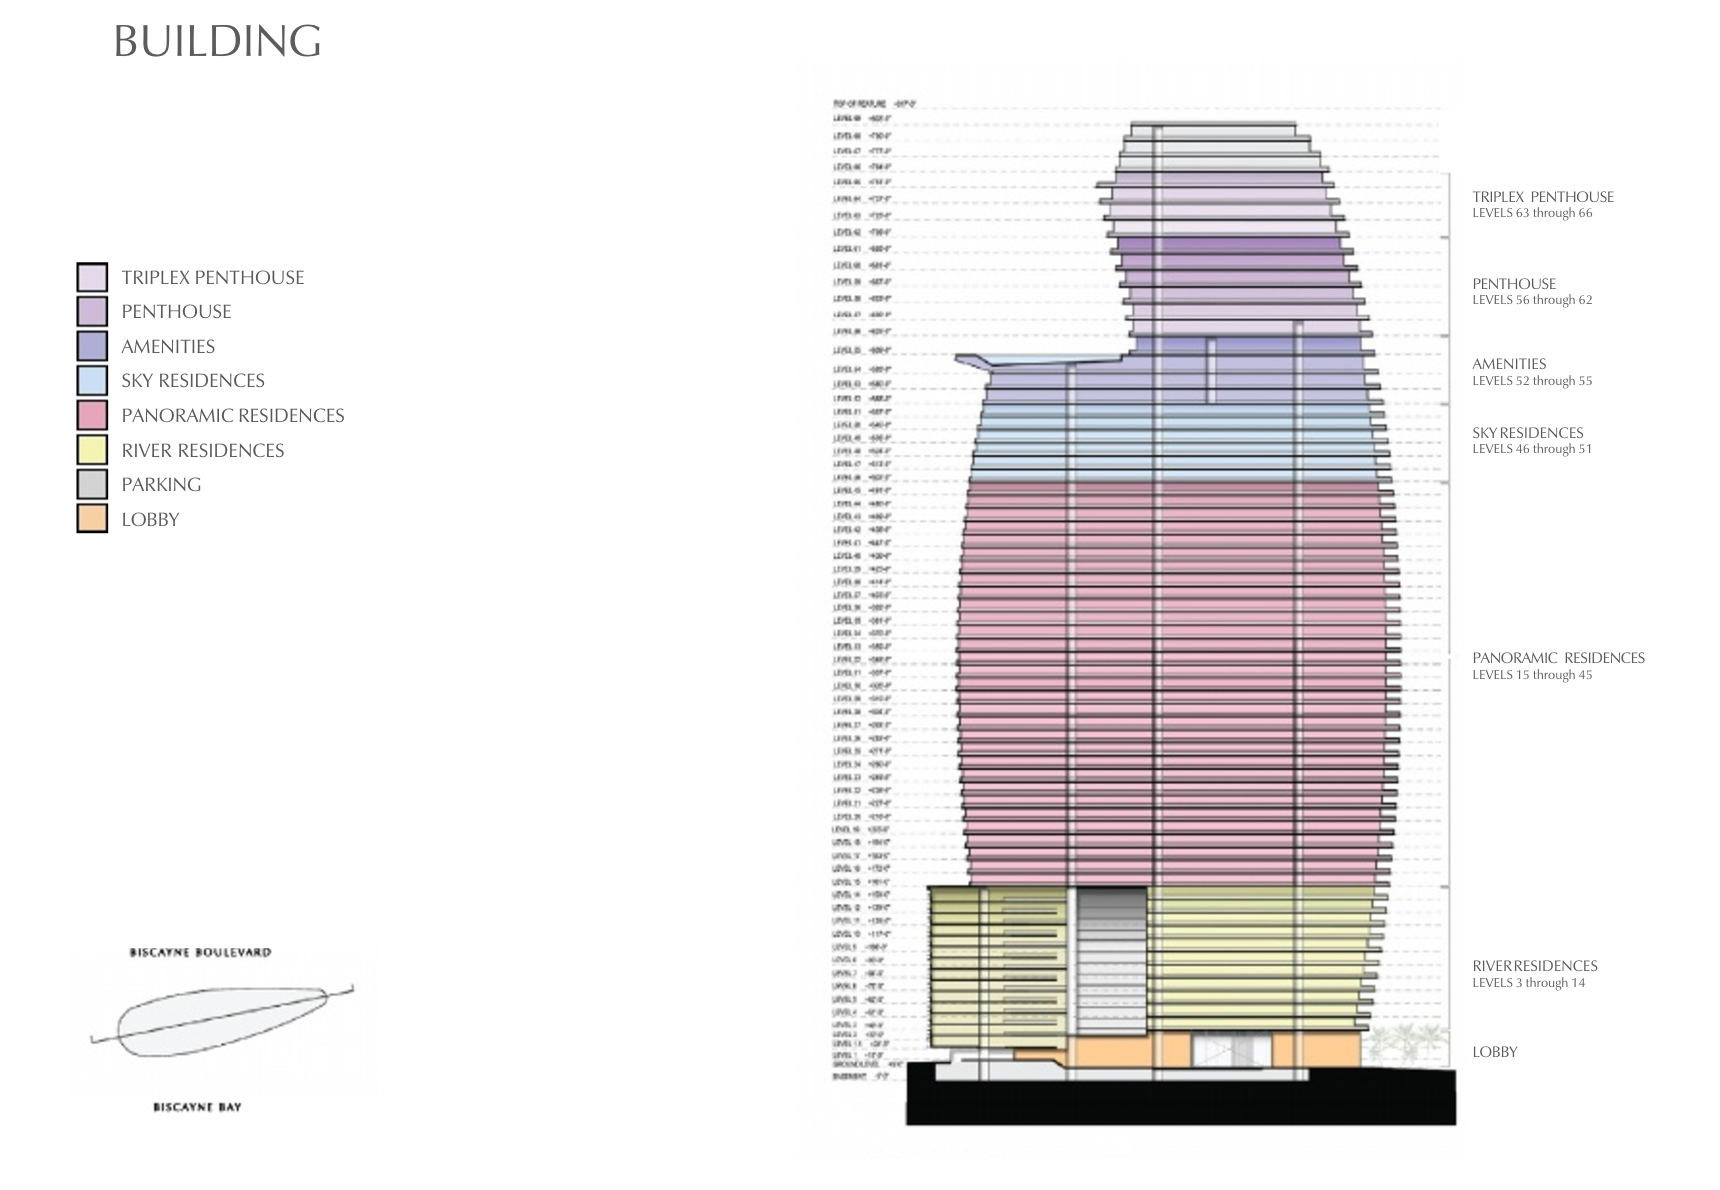 Aston Martin Residences releases pricing details - Curbed Miami